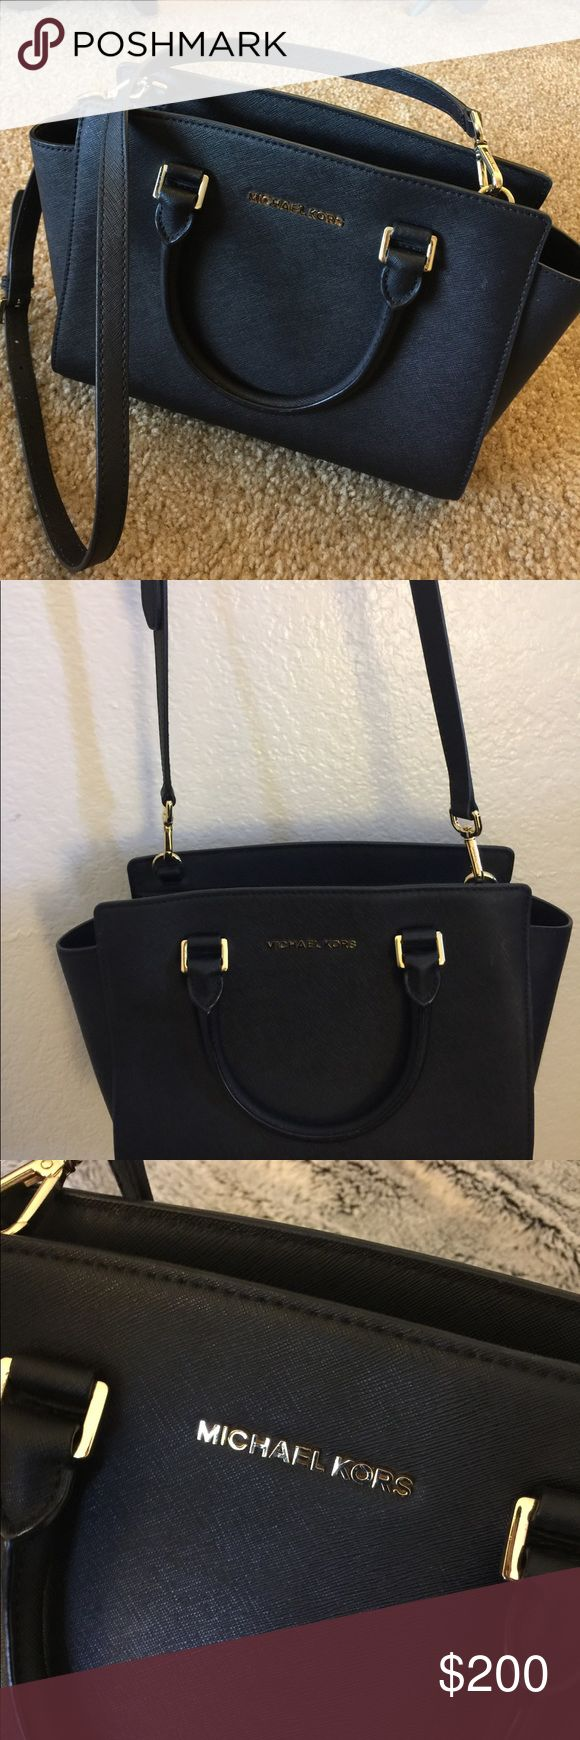 Michael Kors Designer black shoulder bag Michael Kors black shoulder back. Adjustable and detachable strap. Michael Kors logo in Gold. Only worn twice. Great condition. 2 inside compartment pockets and one zipper pocket also inside strap with hook. Can easily turn into bucket bag. Like new Michael Kors Bags Satchels